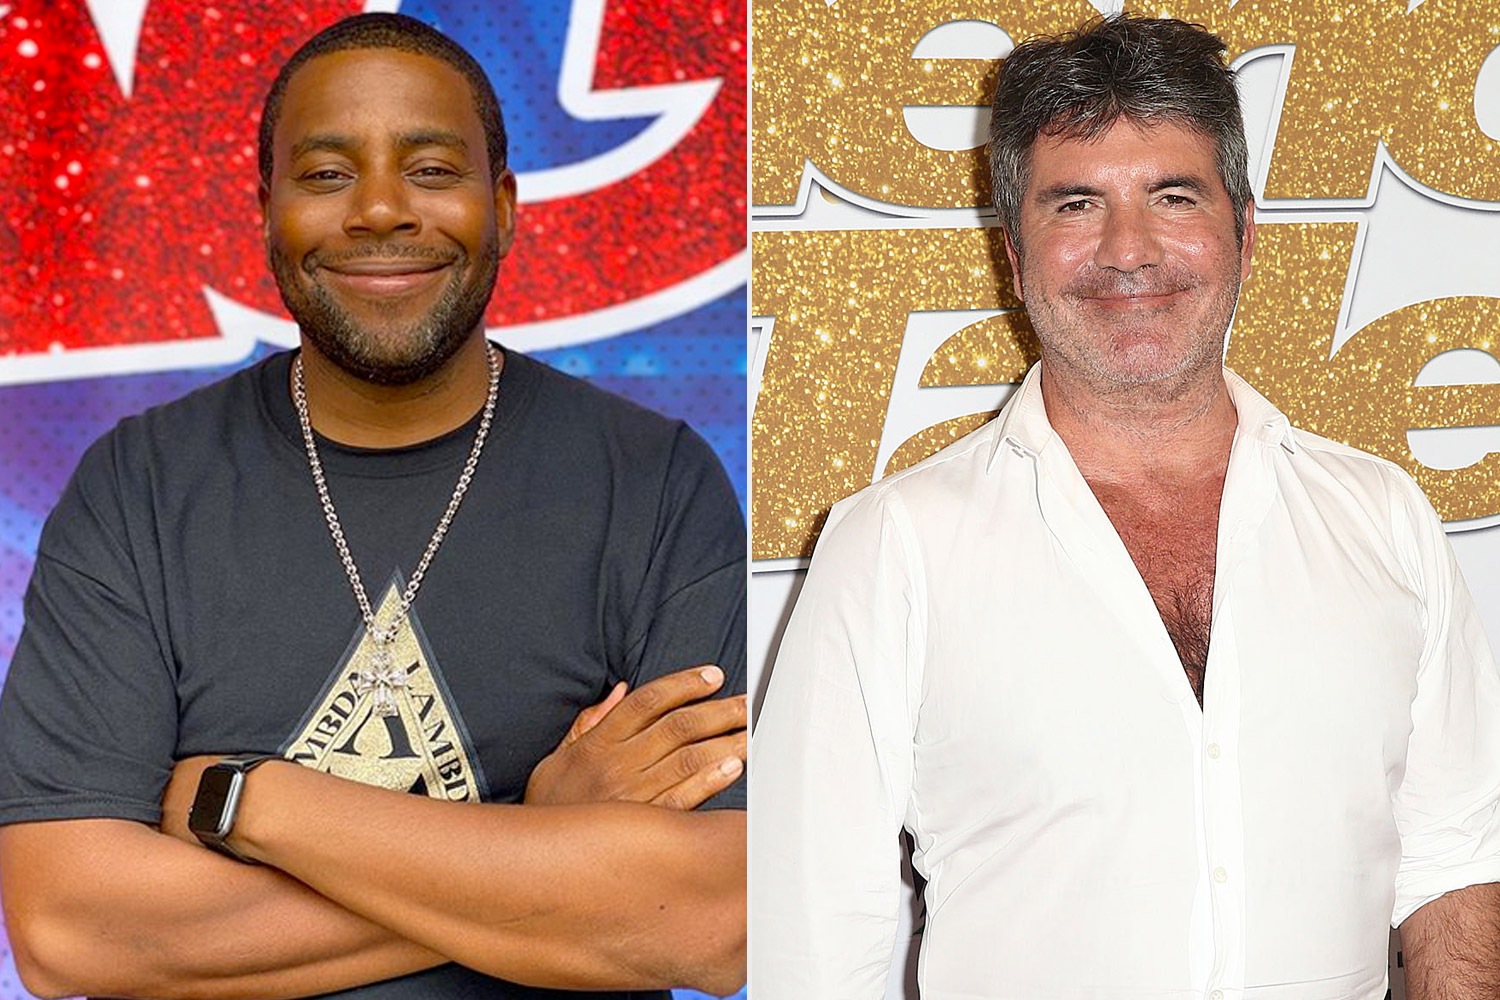 kenan thompson, Simon Cowell